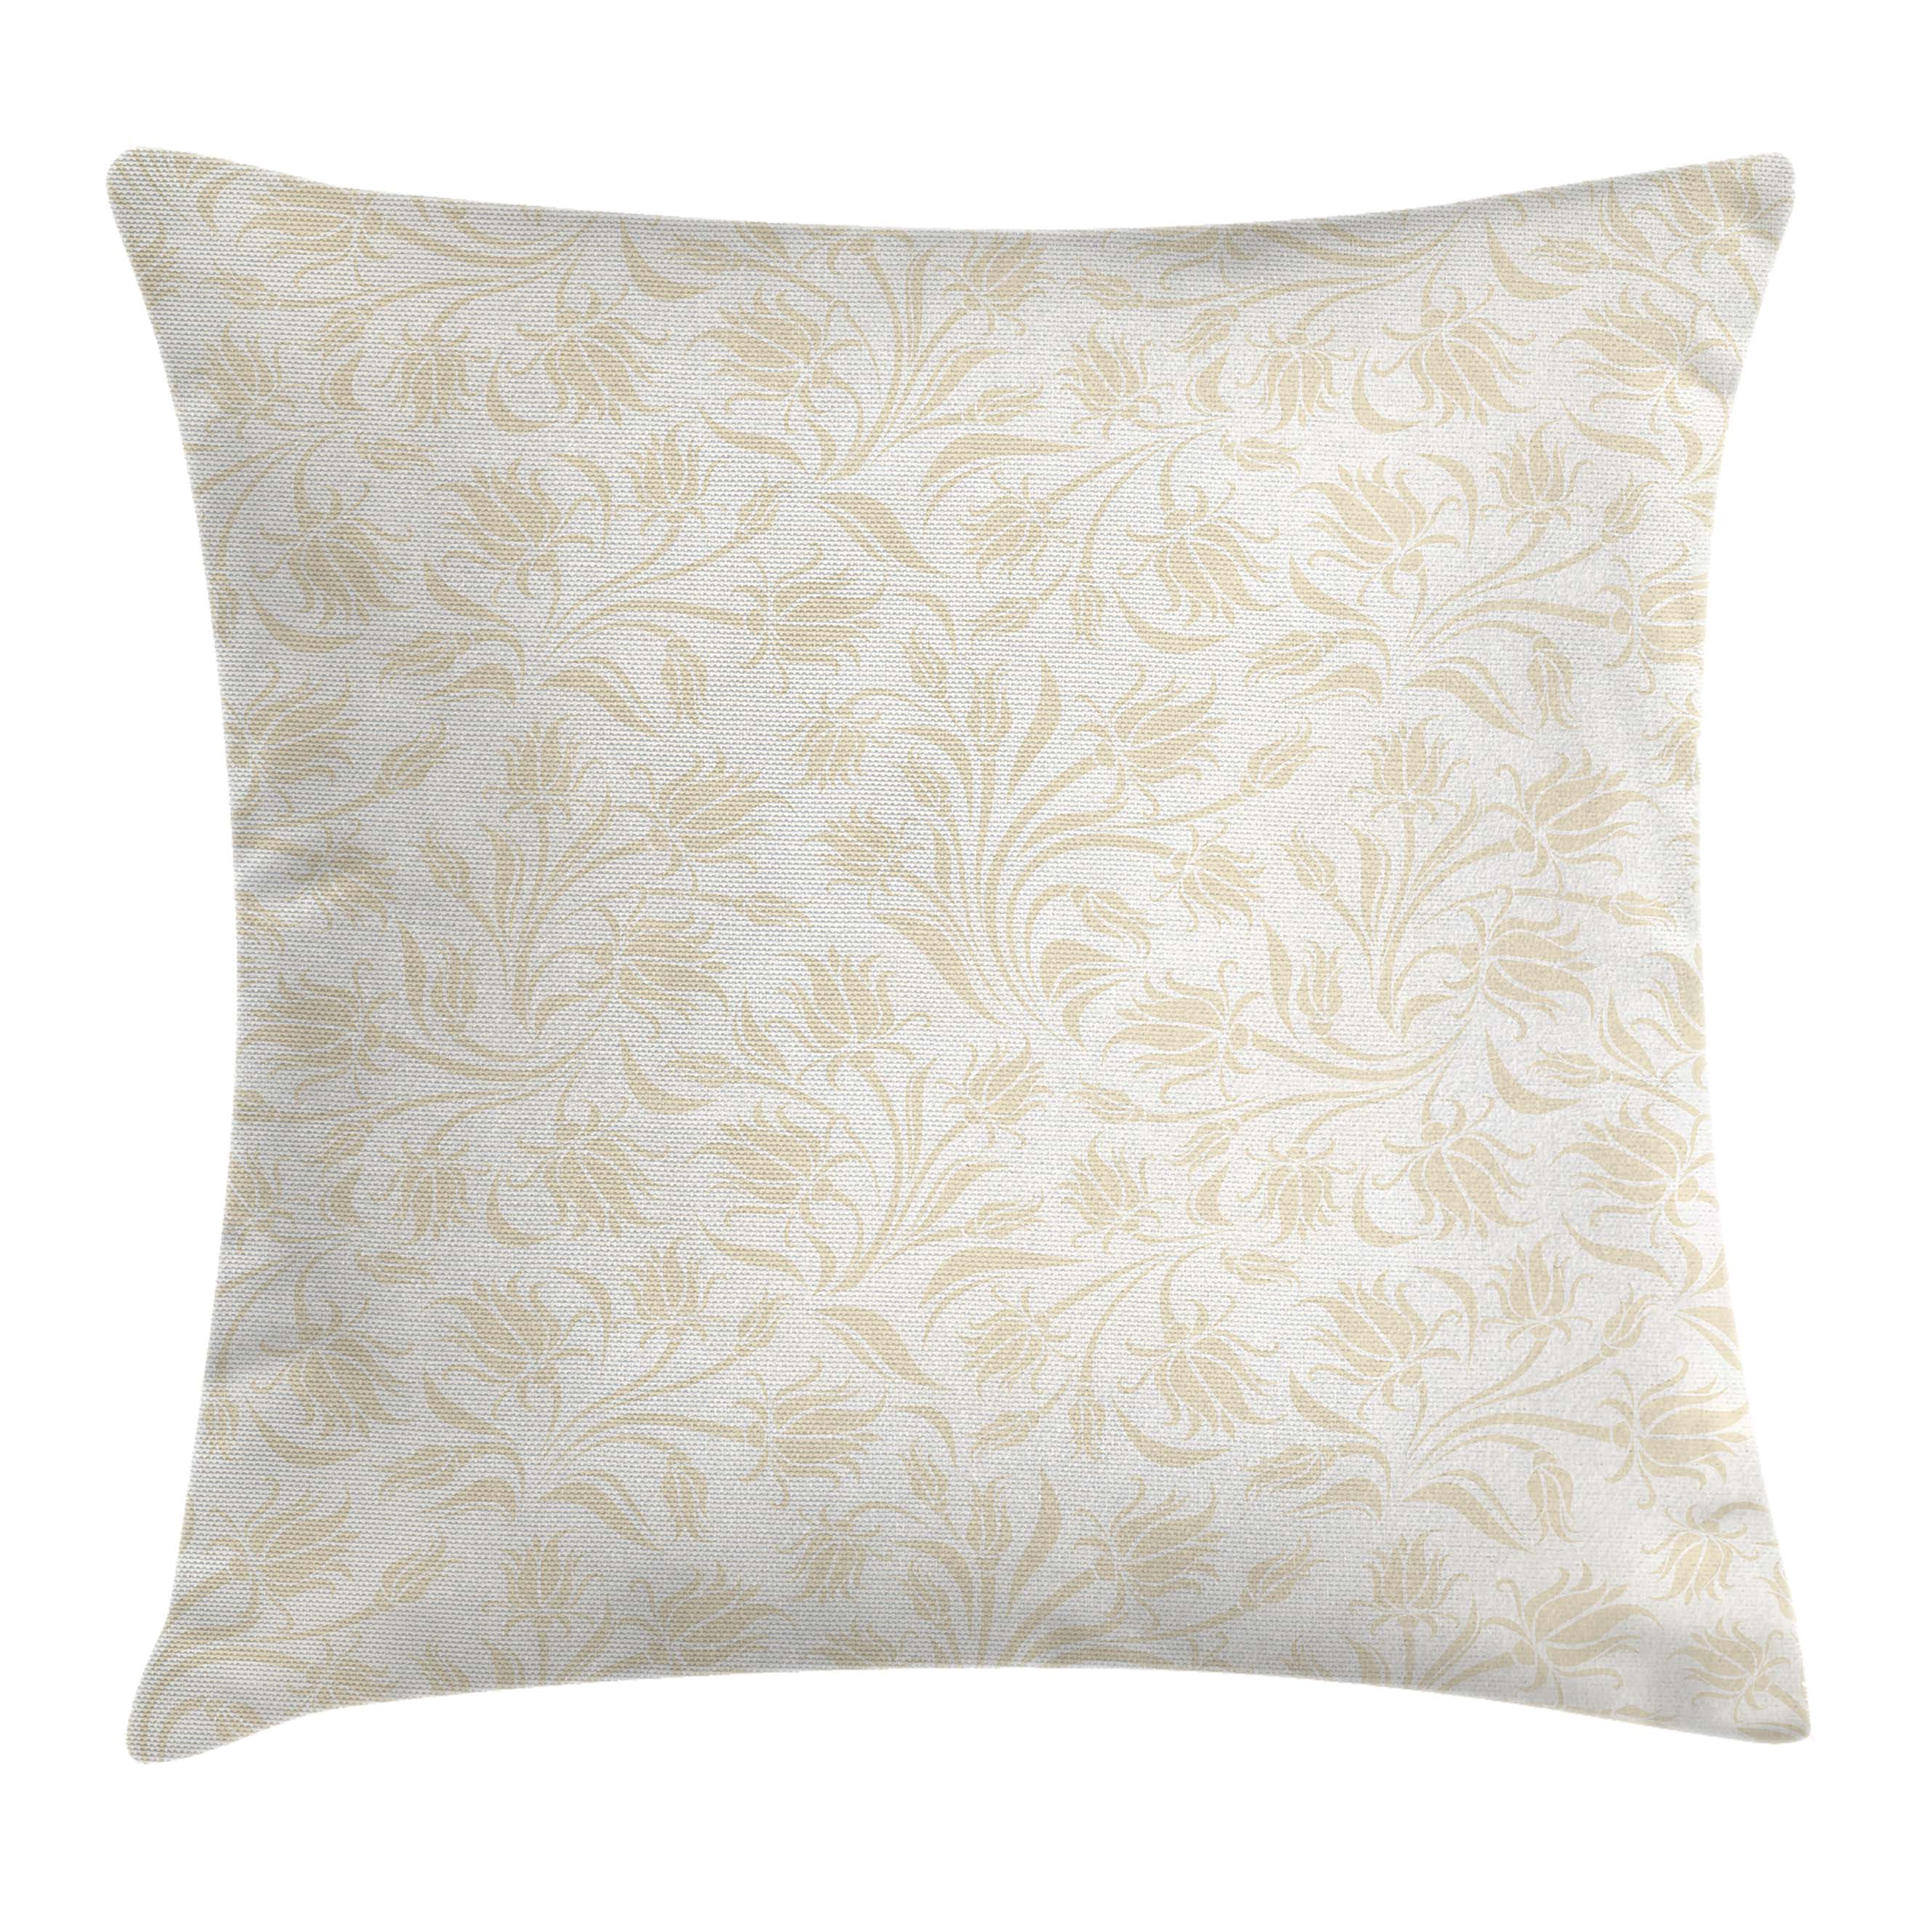 Ivory Throw Pillow Cushion Cover, Baroque Elegance Curved Leaves Floral Blooms Artistic Nature Beauty Kitsch Elegance Motif, Decorative Square Accent Pillow Case, 18 X 18 Inches, Cream, by Ambesonne